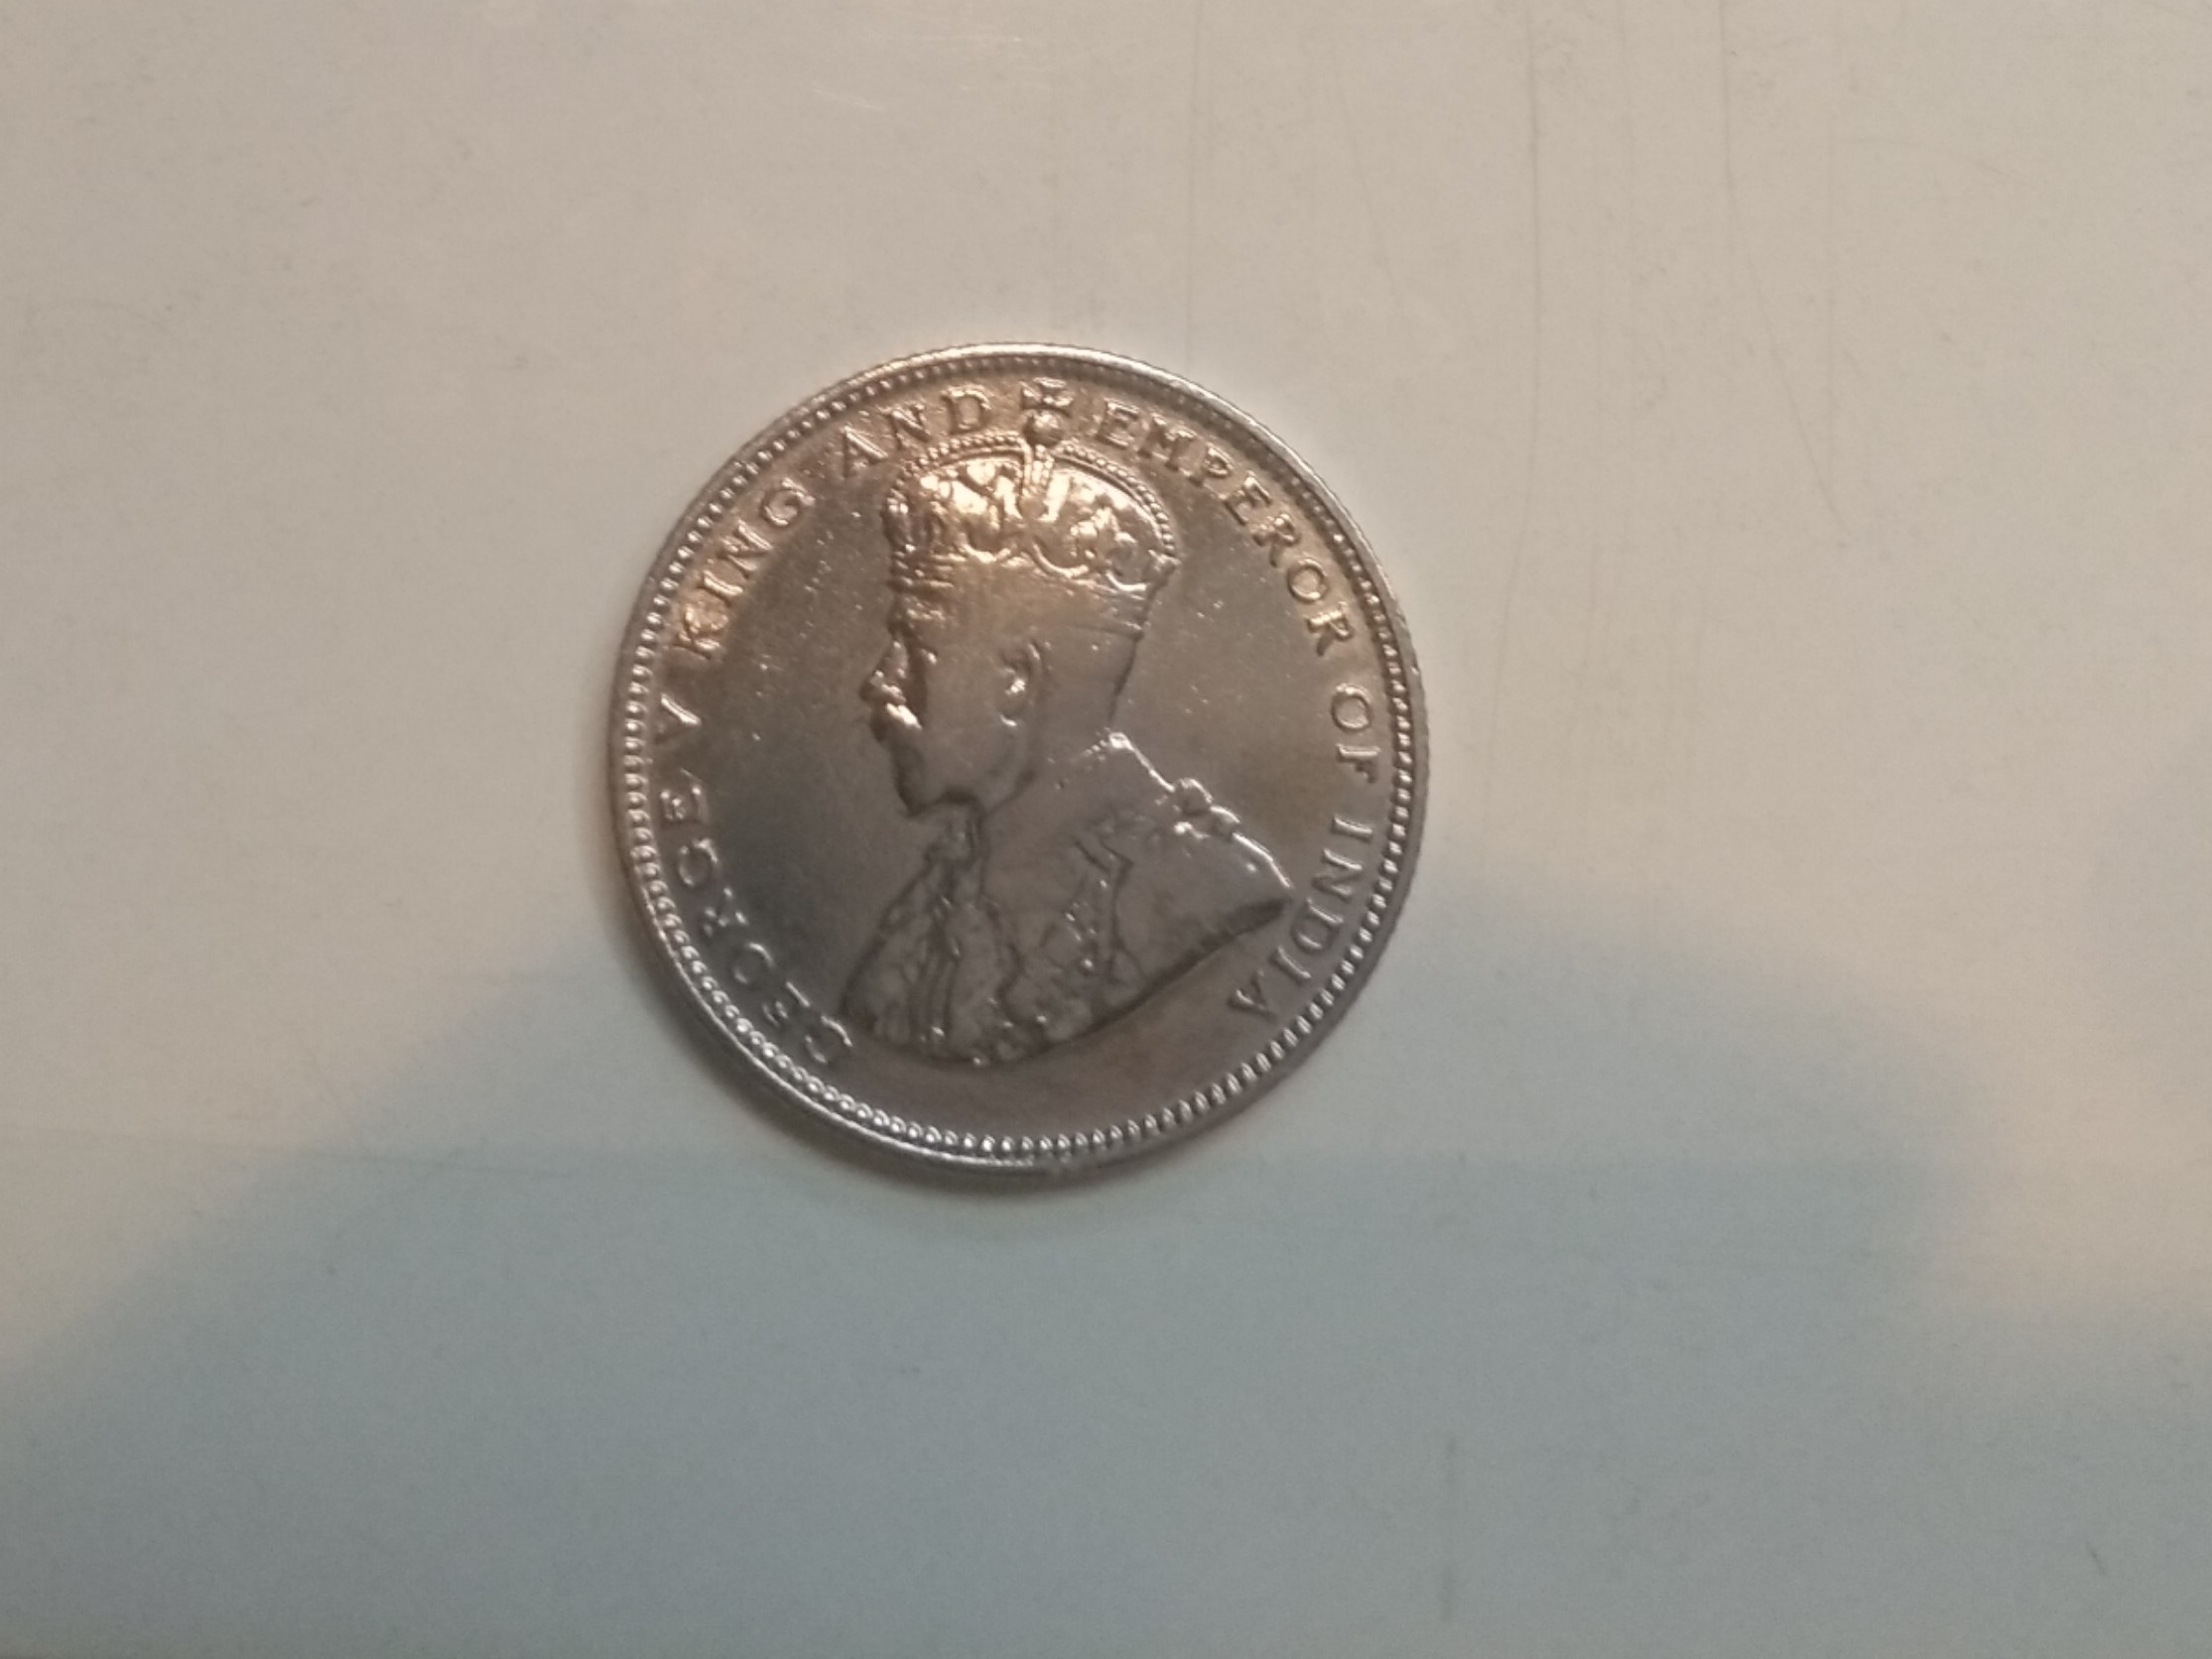 WANT TO SELL COIN FROM 1927